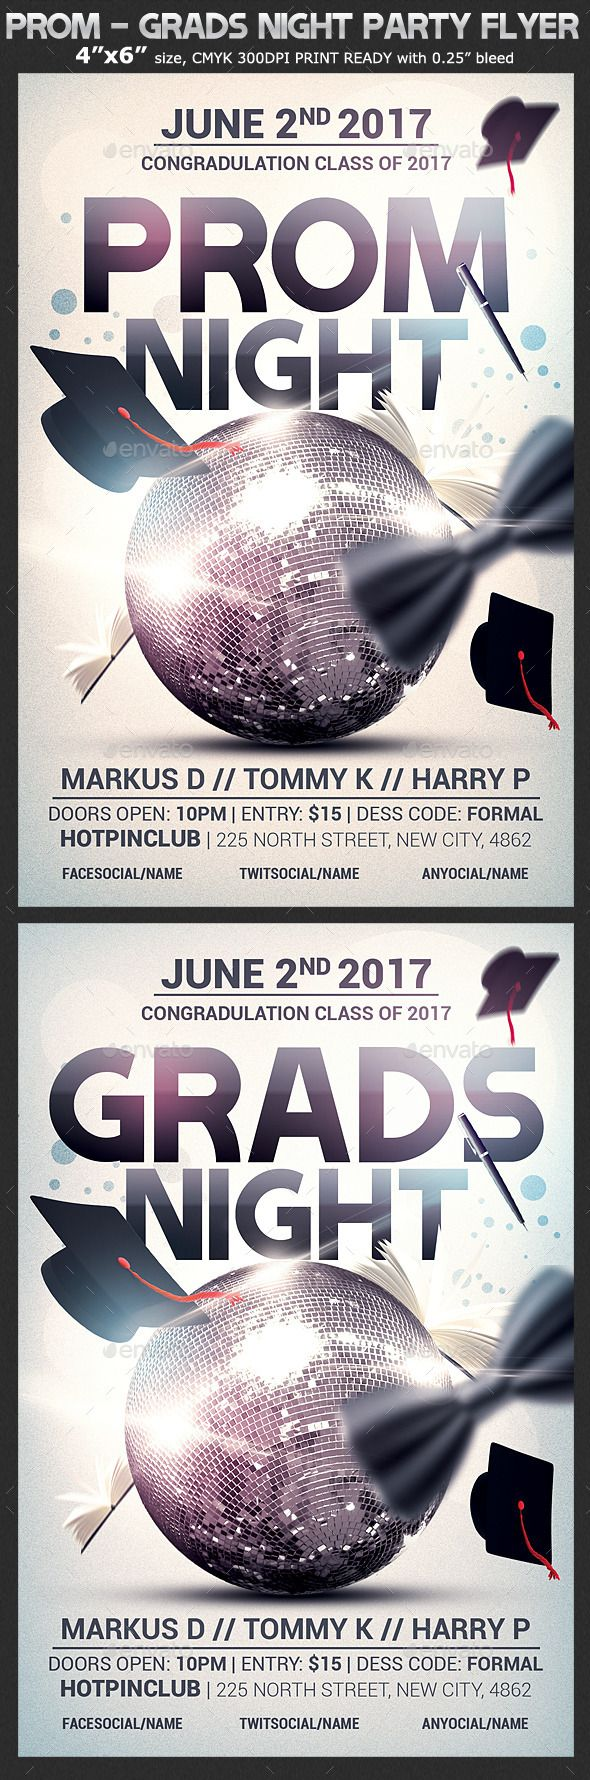 Prom-Graduation Night Party Flyer Template | Party flyer, Night ...